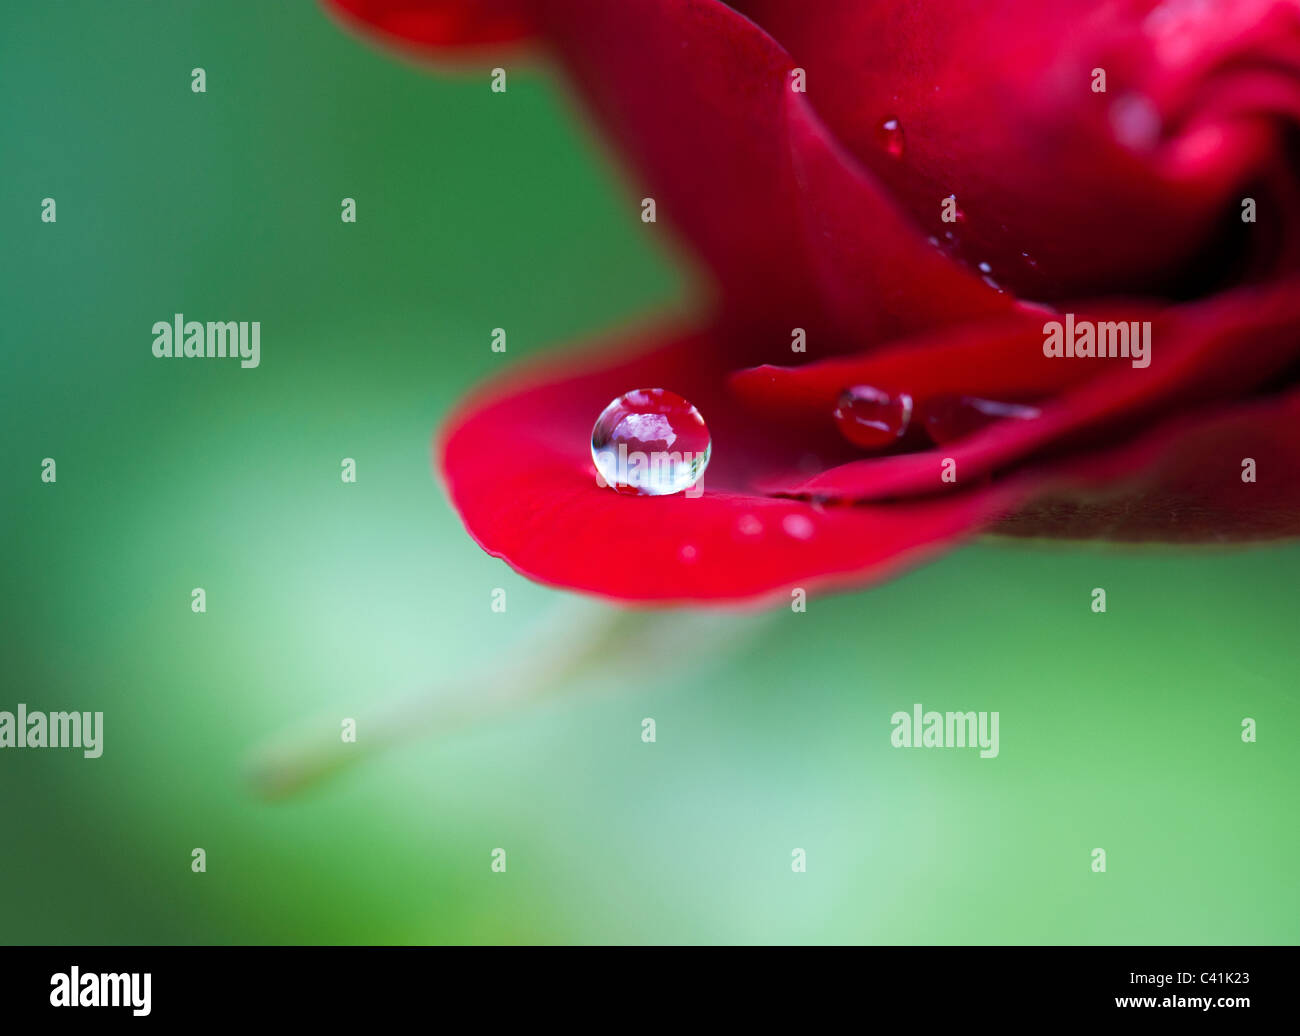 Raindrop on red rose petals against a green background - Stock Image